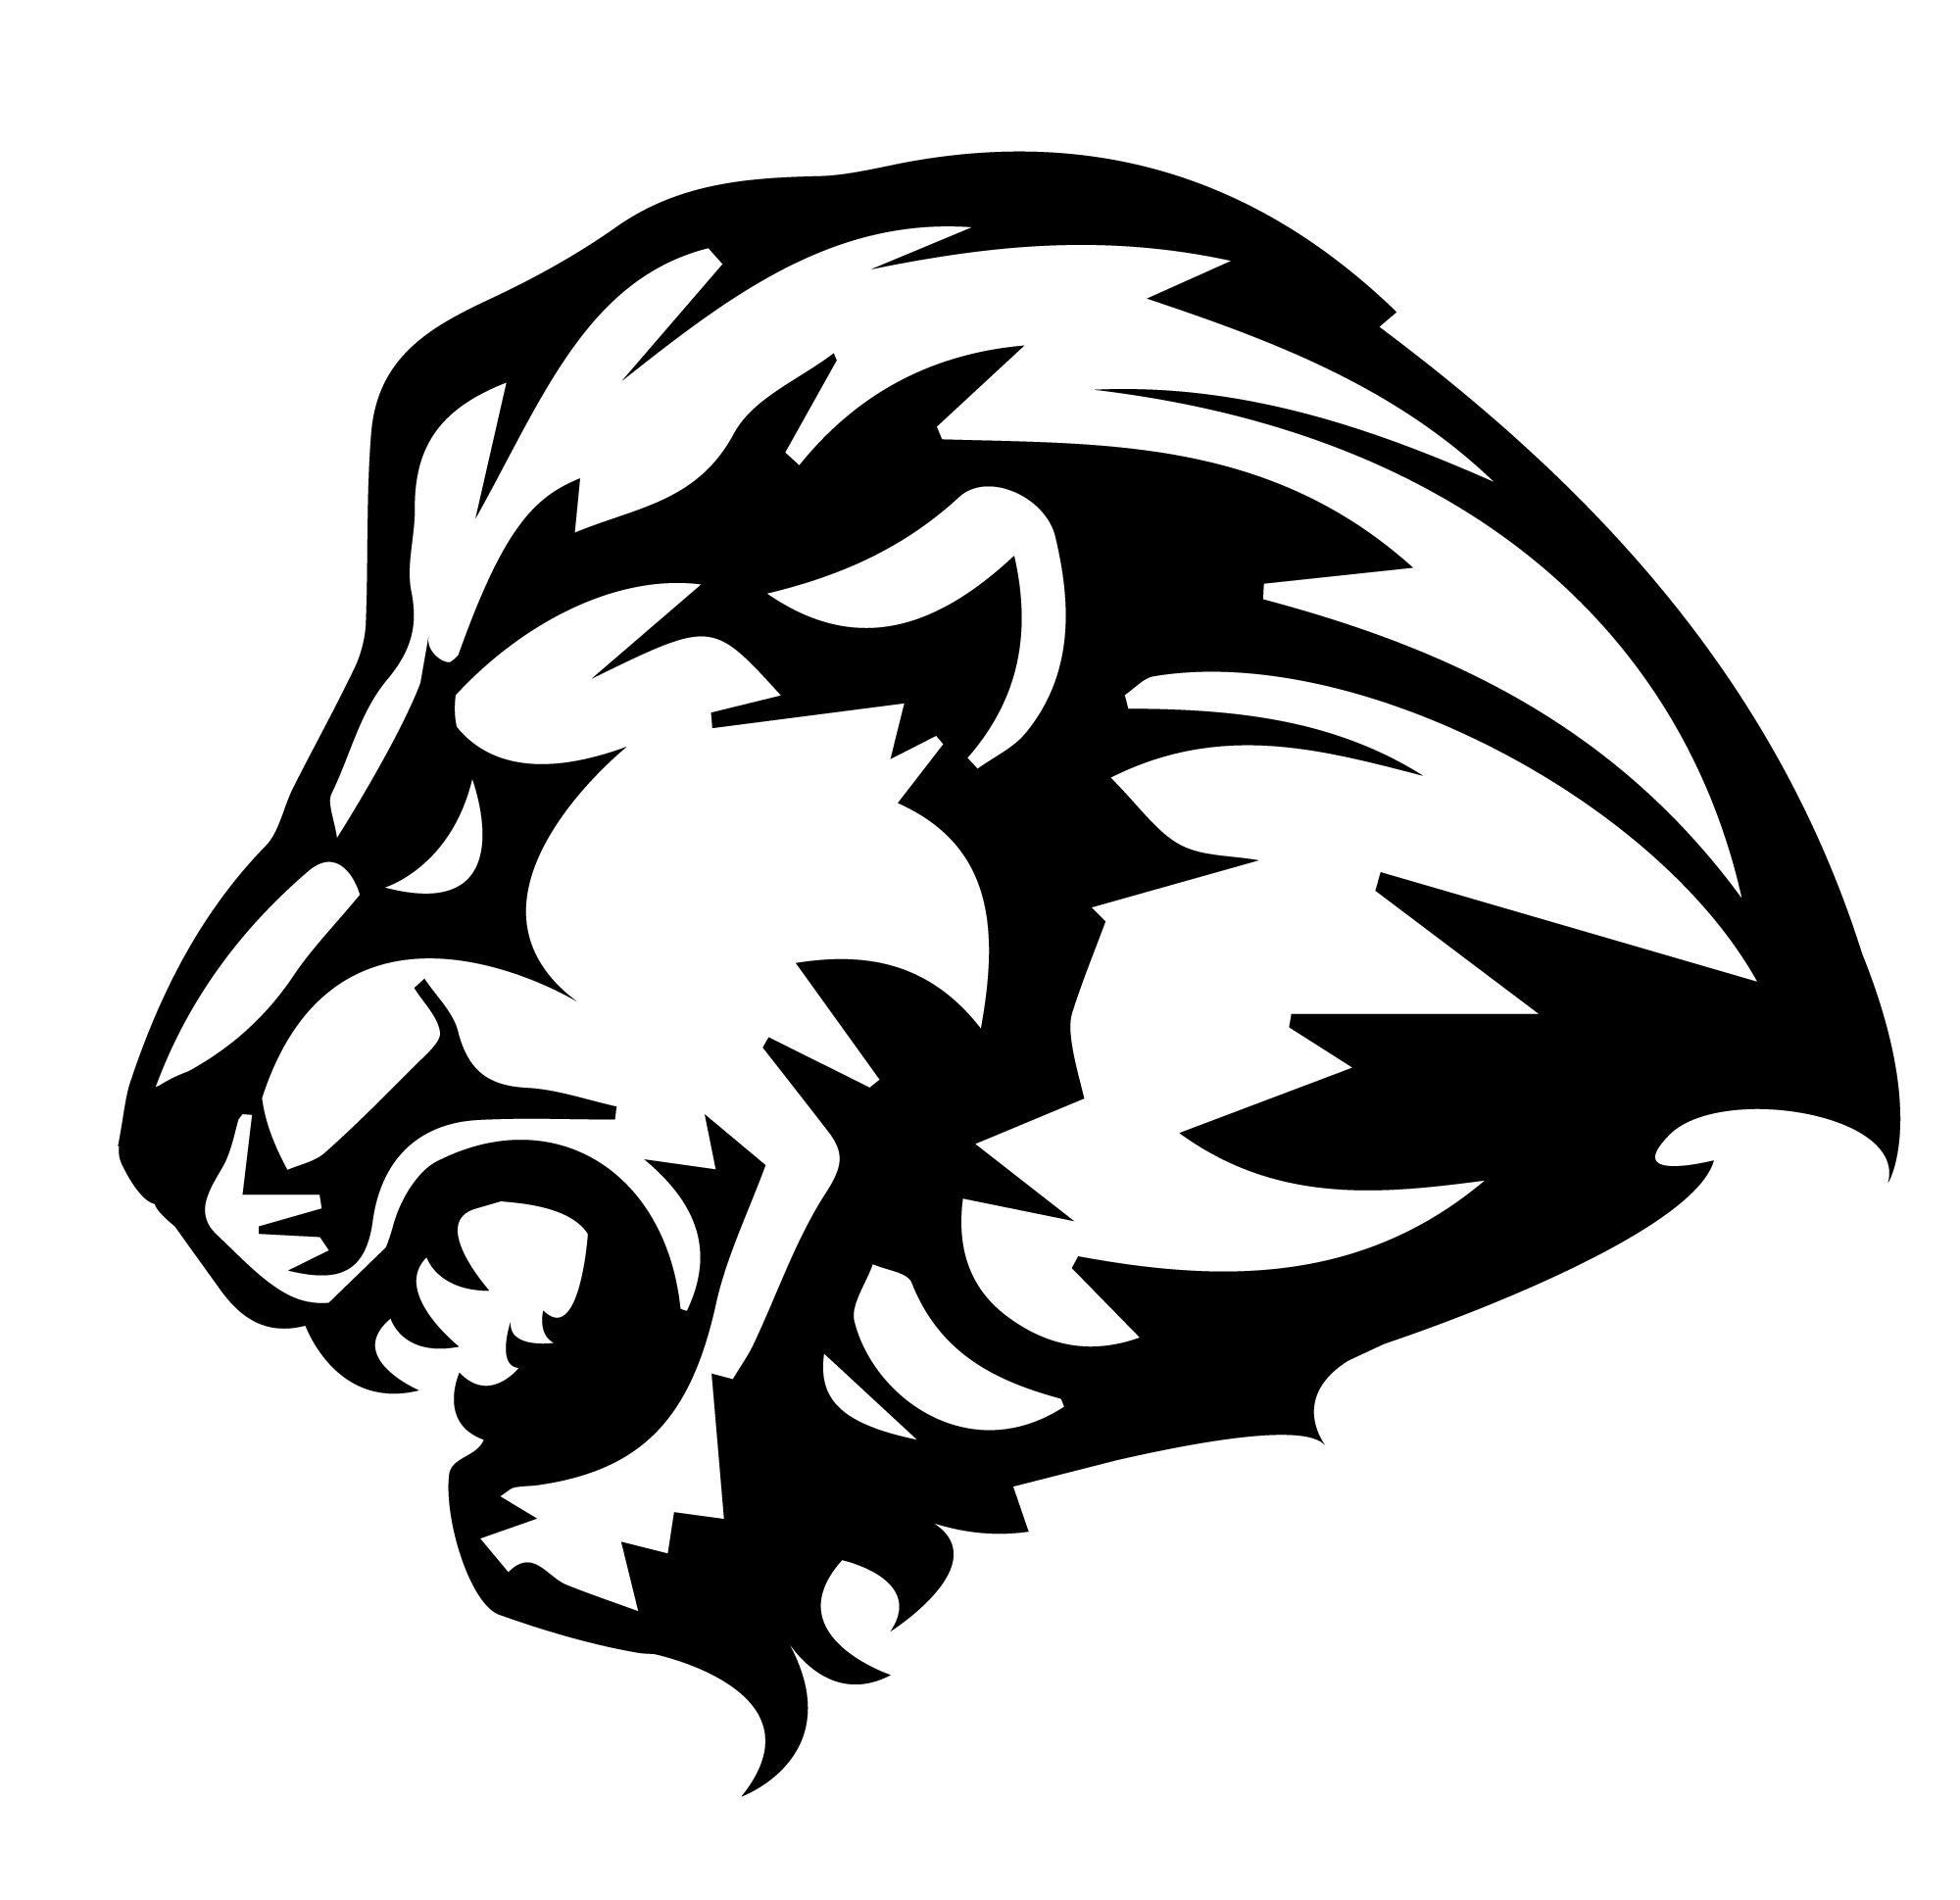 Roaring Lion Logo Logodix Any other artwork or logos are property and trademarks of their respective owners. roaring lion logo logodix